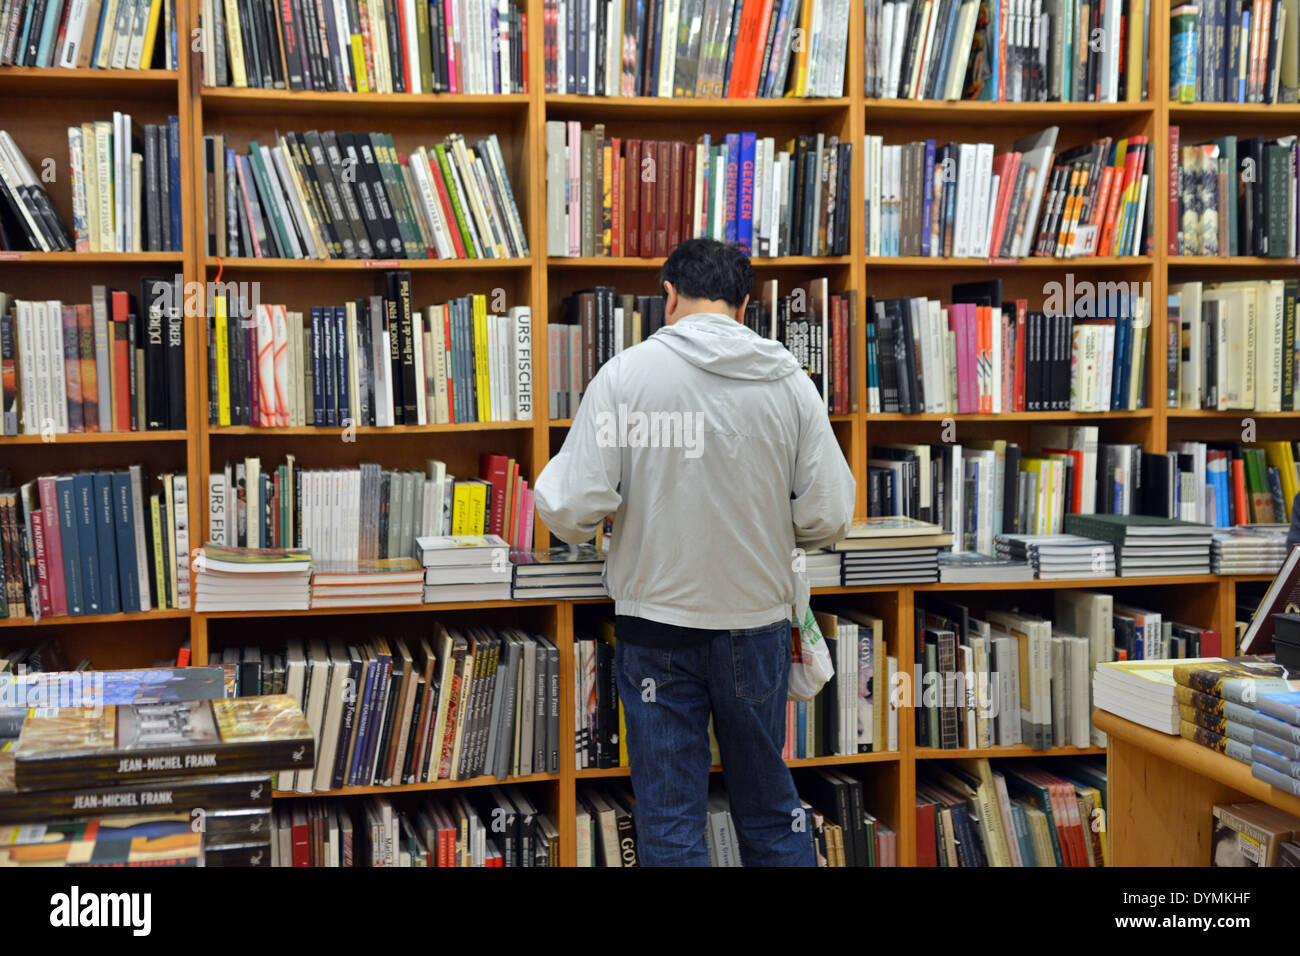 A man in a sweatshirt shopping for books at the Strand Bookstore on Broadway in Greenwich Village, Manhattan, NYC. - Stock Image